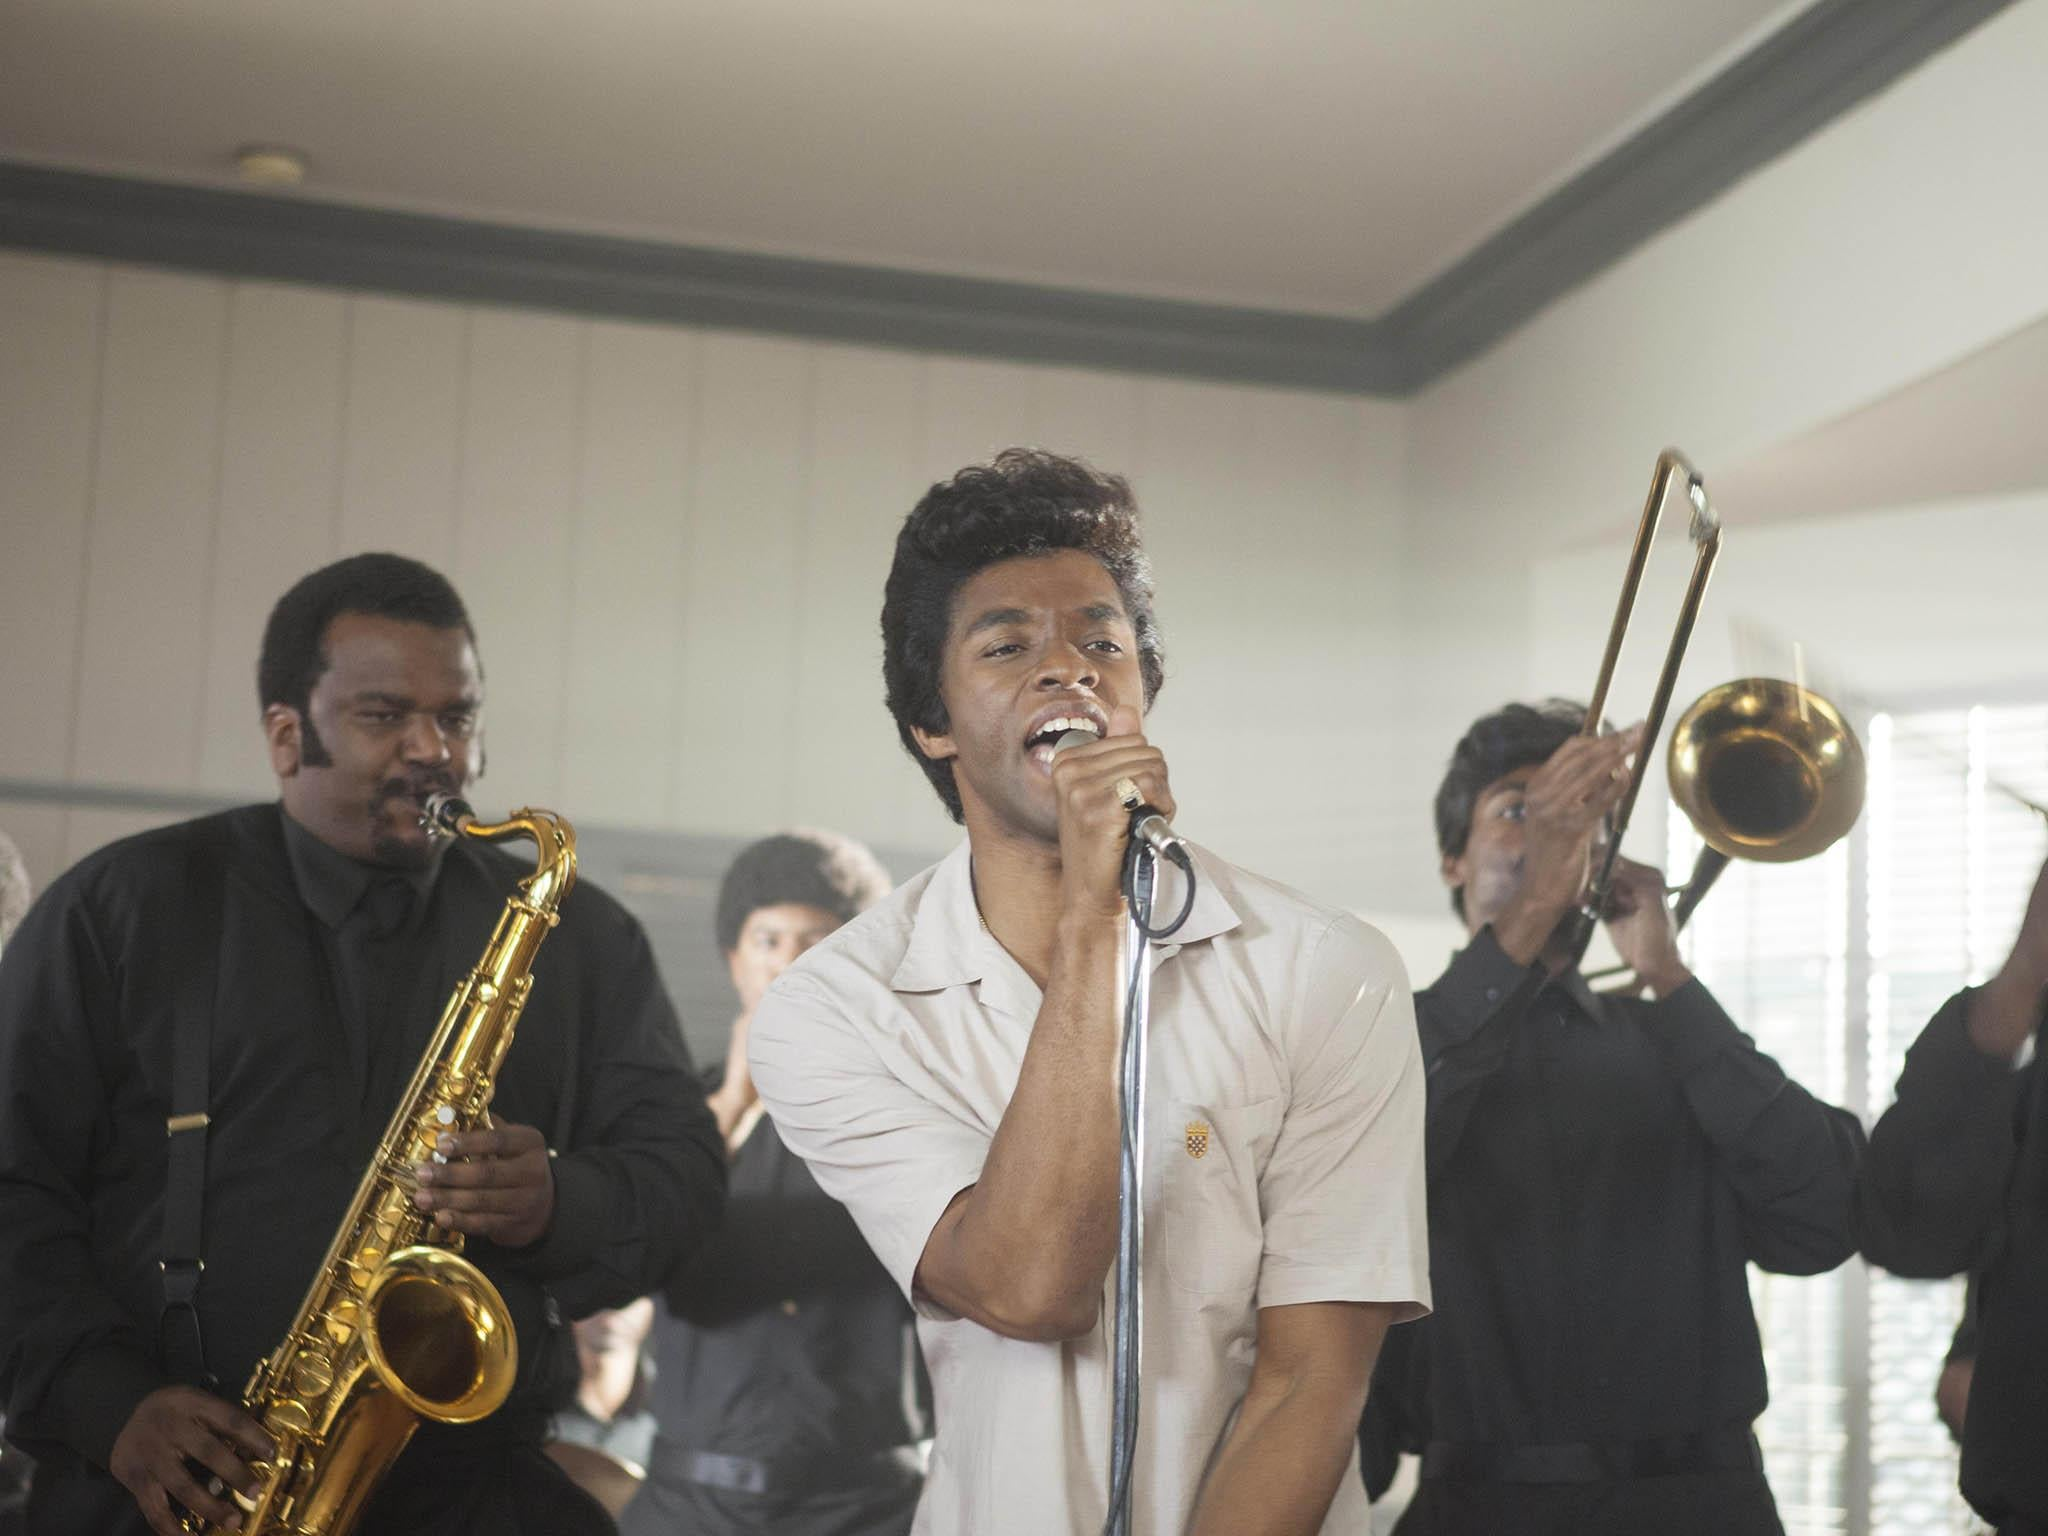 7. Get on Up (2014)